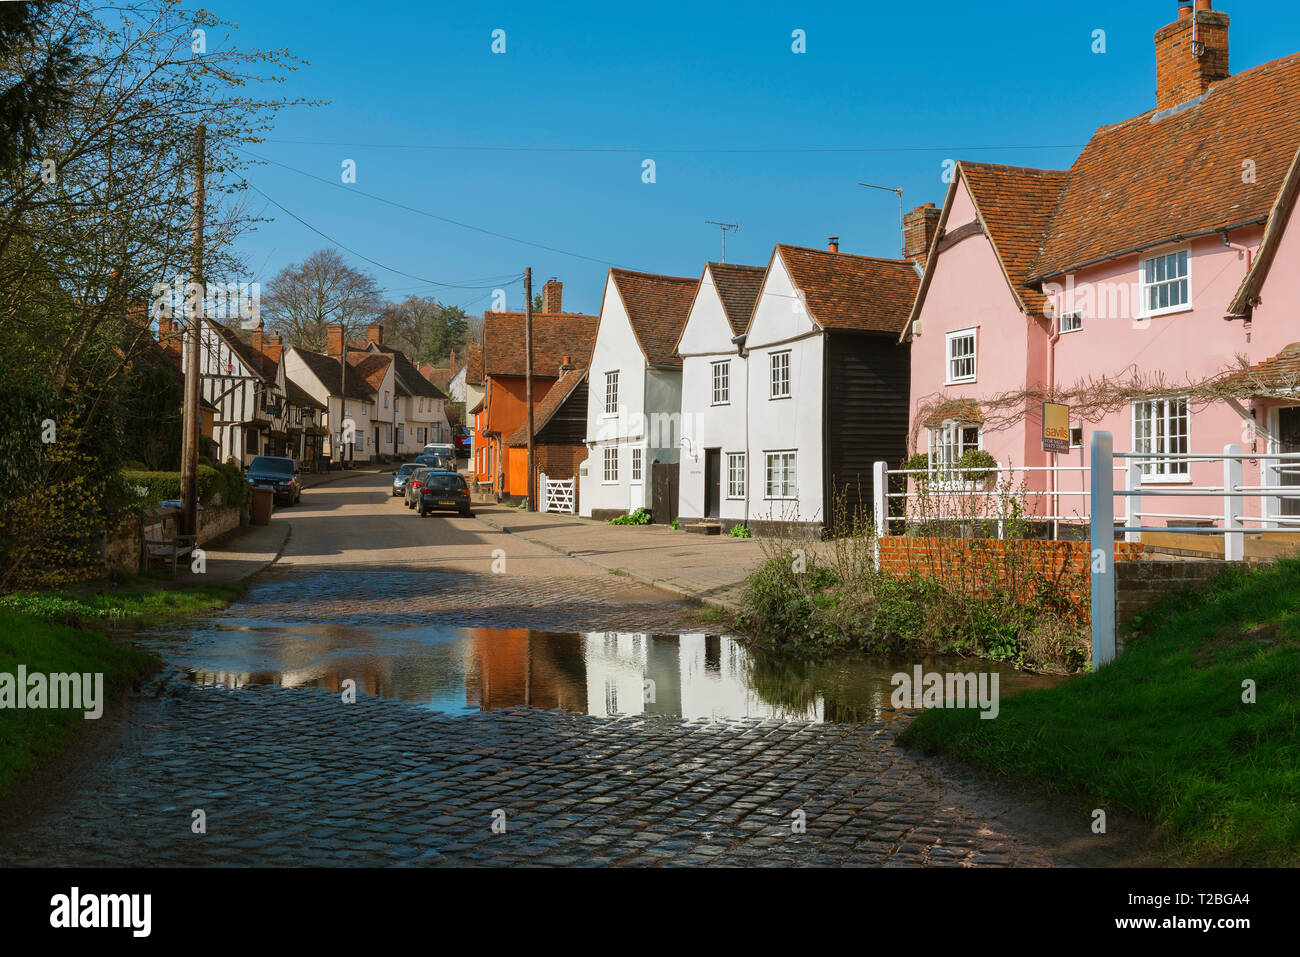 Village England, view of The Street in the centre of Kersey village, with its famous ford or 'splash' in the foreground, Suffolk, England, UK. - Stock Image